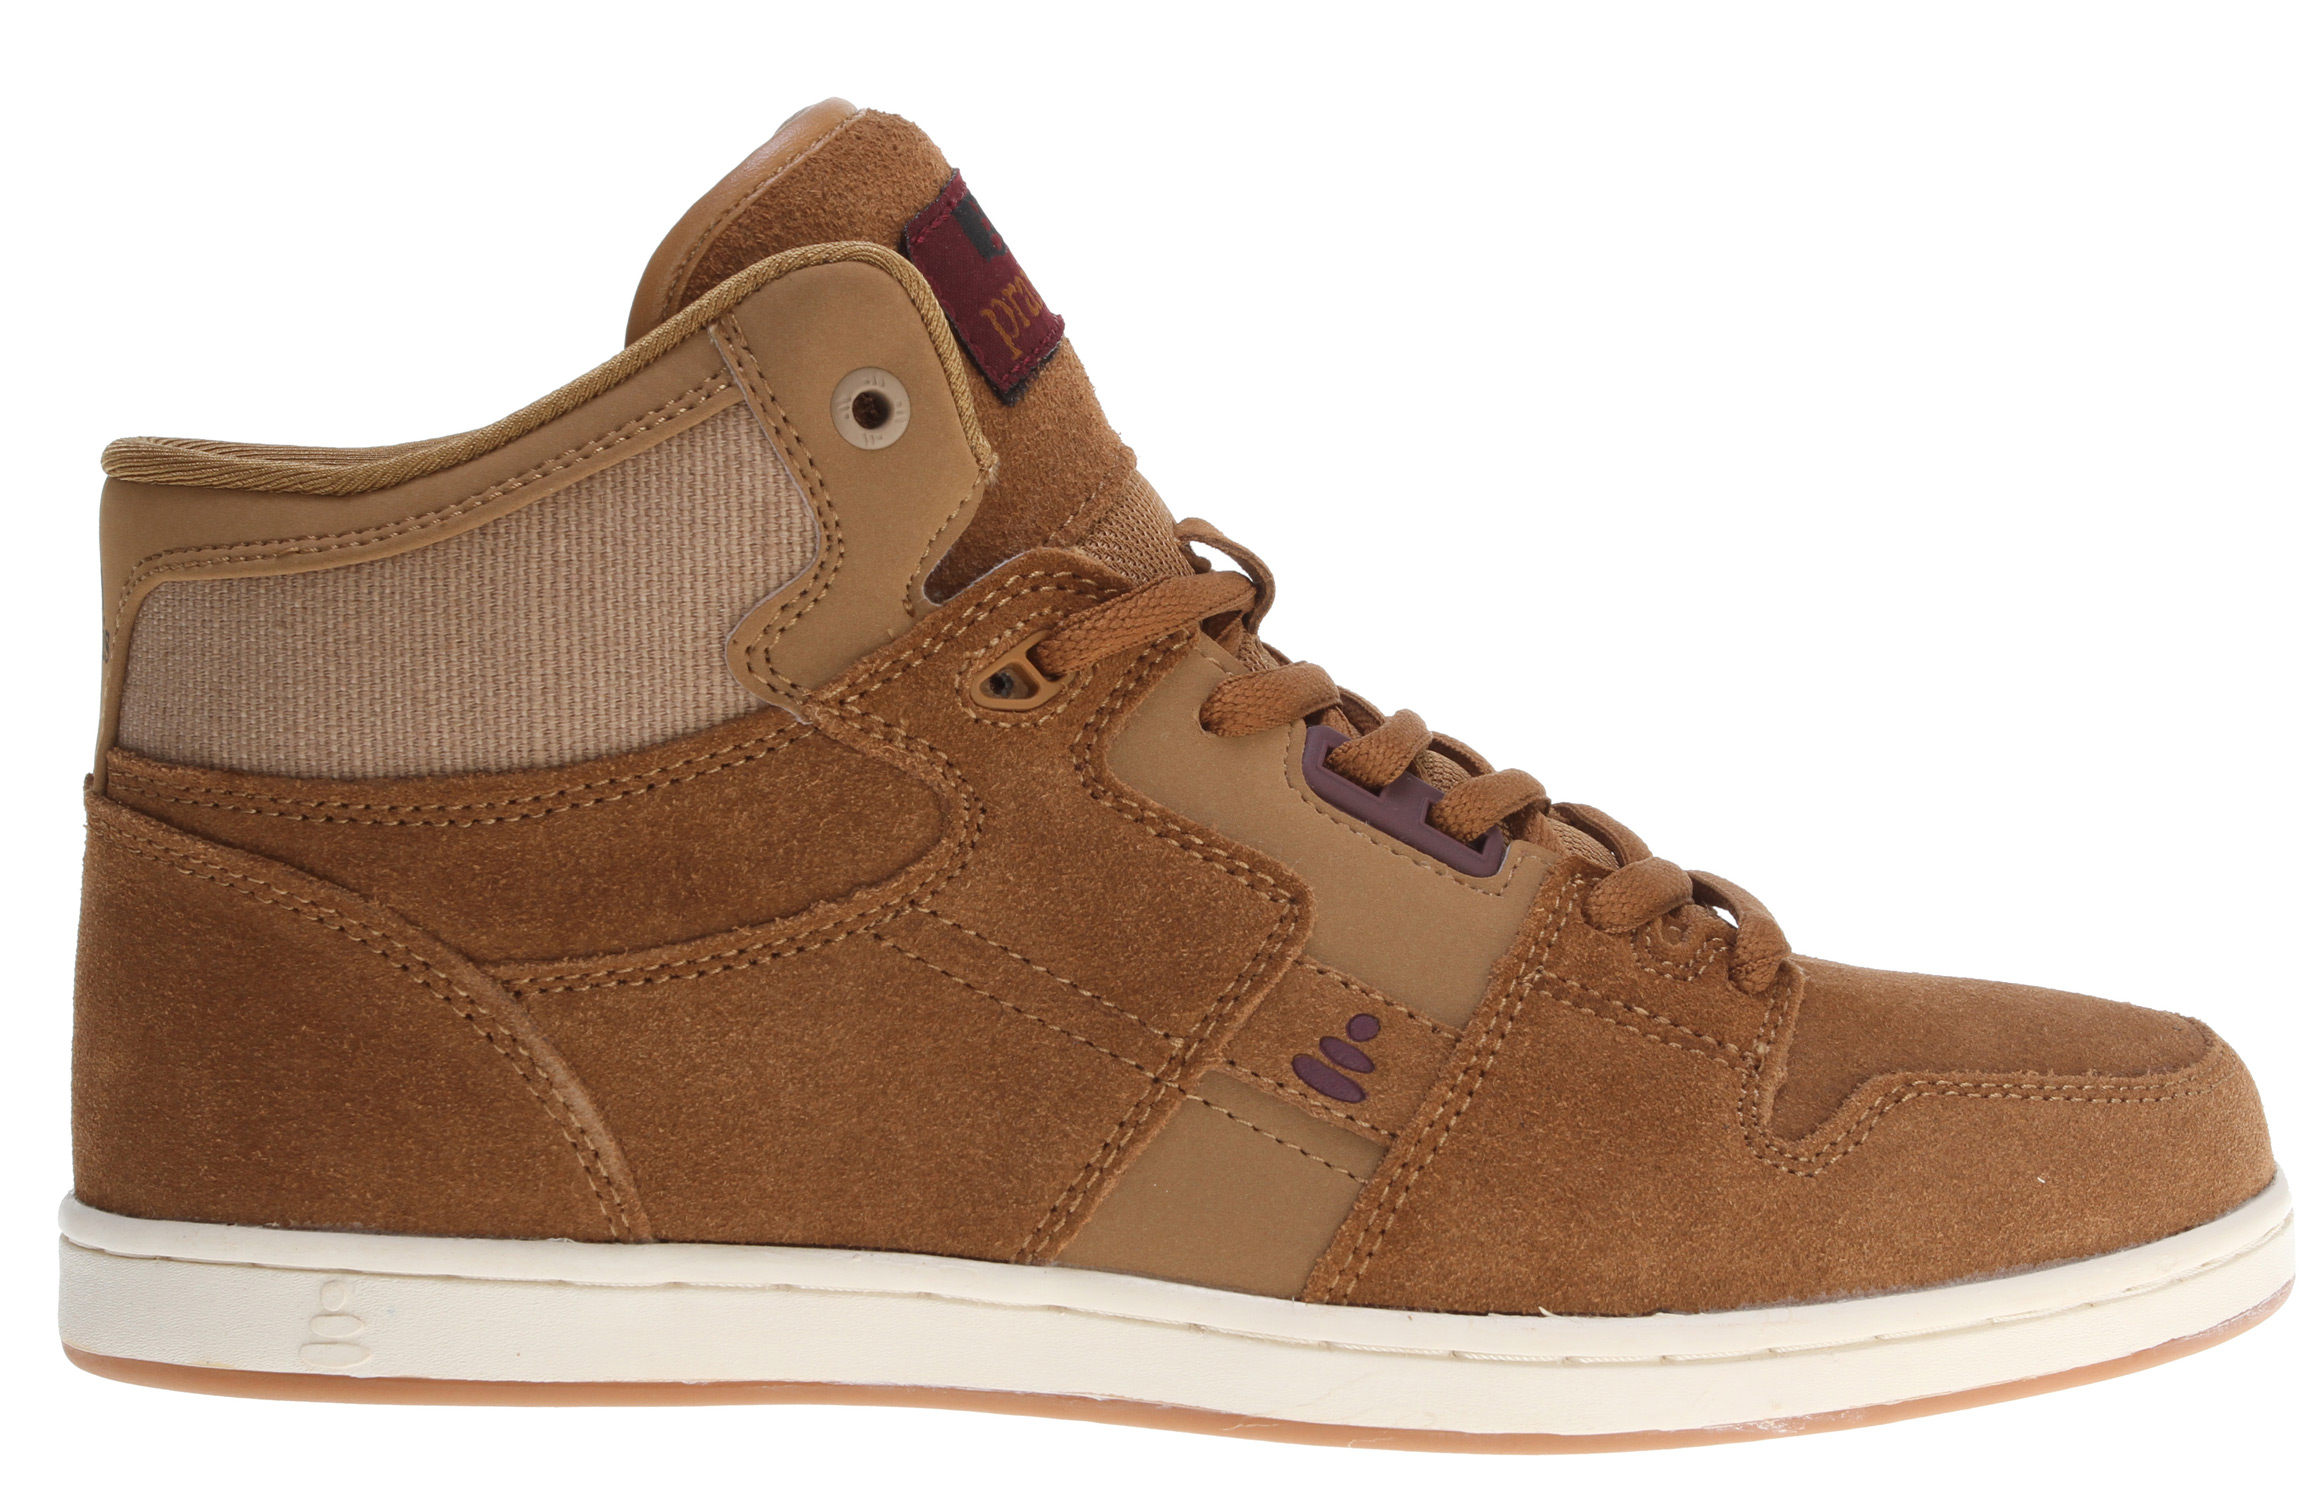 Skateboard Praxis is youthful lifestyle footwear dedicated to the essence of skateboarding. Praxis Footwear is action guided by purpose, and they believe in this for their company and their lives. Praxis promotes a product and outlook that preserves freedom of expression and lifestyle, if that sounds like your cup of tea then drink up.Key Features of the Praxis Freestyle Skate Shoes Tan Suede/Hemp: Synthetic upper Synthetic lining Rubber sole - $45.95